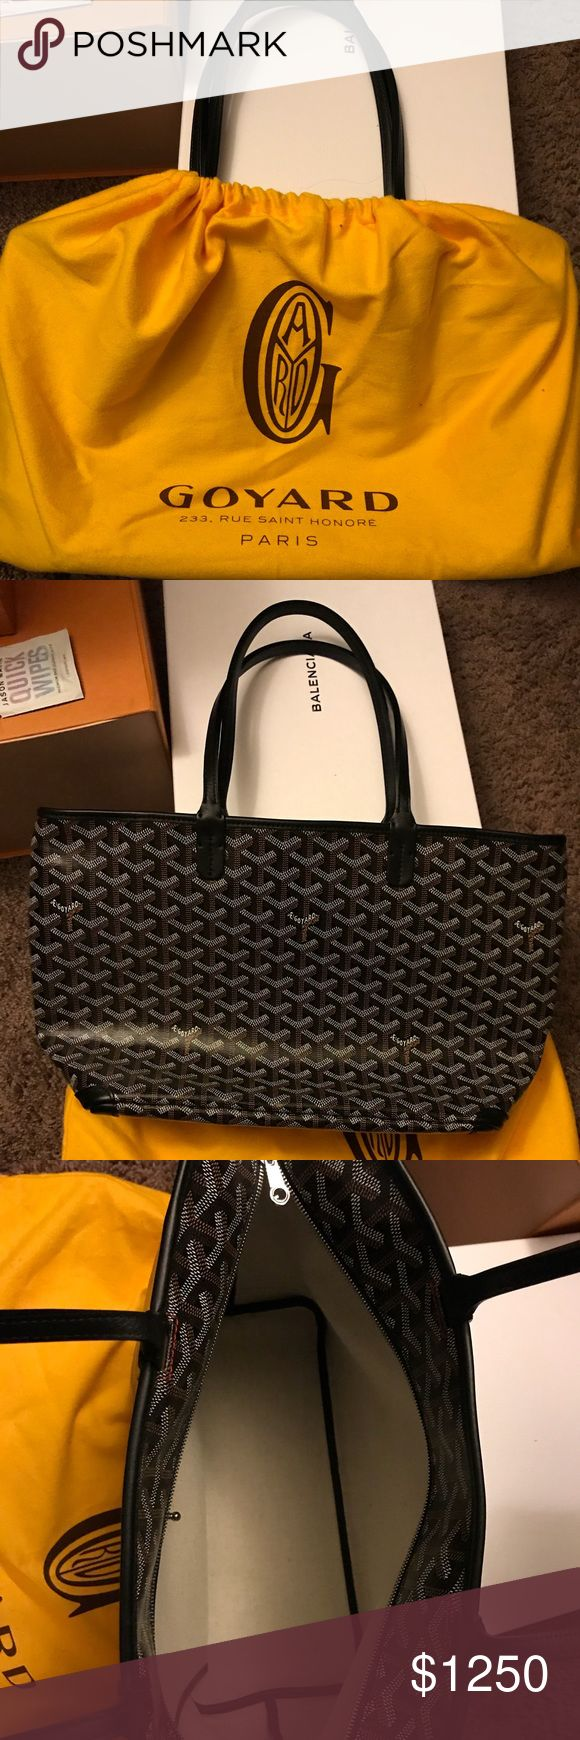 Authentic Goyard purse Authentic brand new Goyard purse. Comes with dust bag, original shopping bag, authorization cards, and receipt. Last picture shows how big the purse is.❗️This purse shows sold in my closet but it is not sold!!❗️ Goyard Bags Shoulder Bags